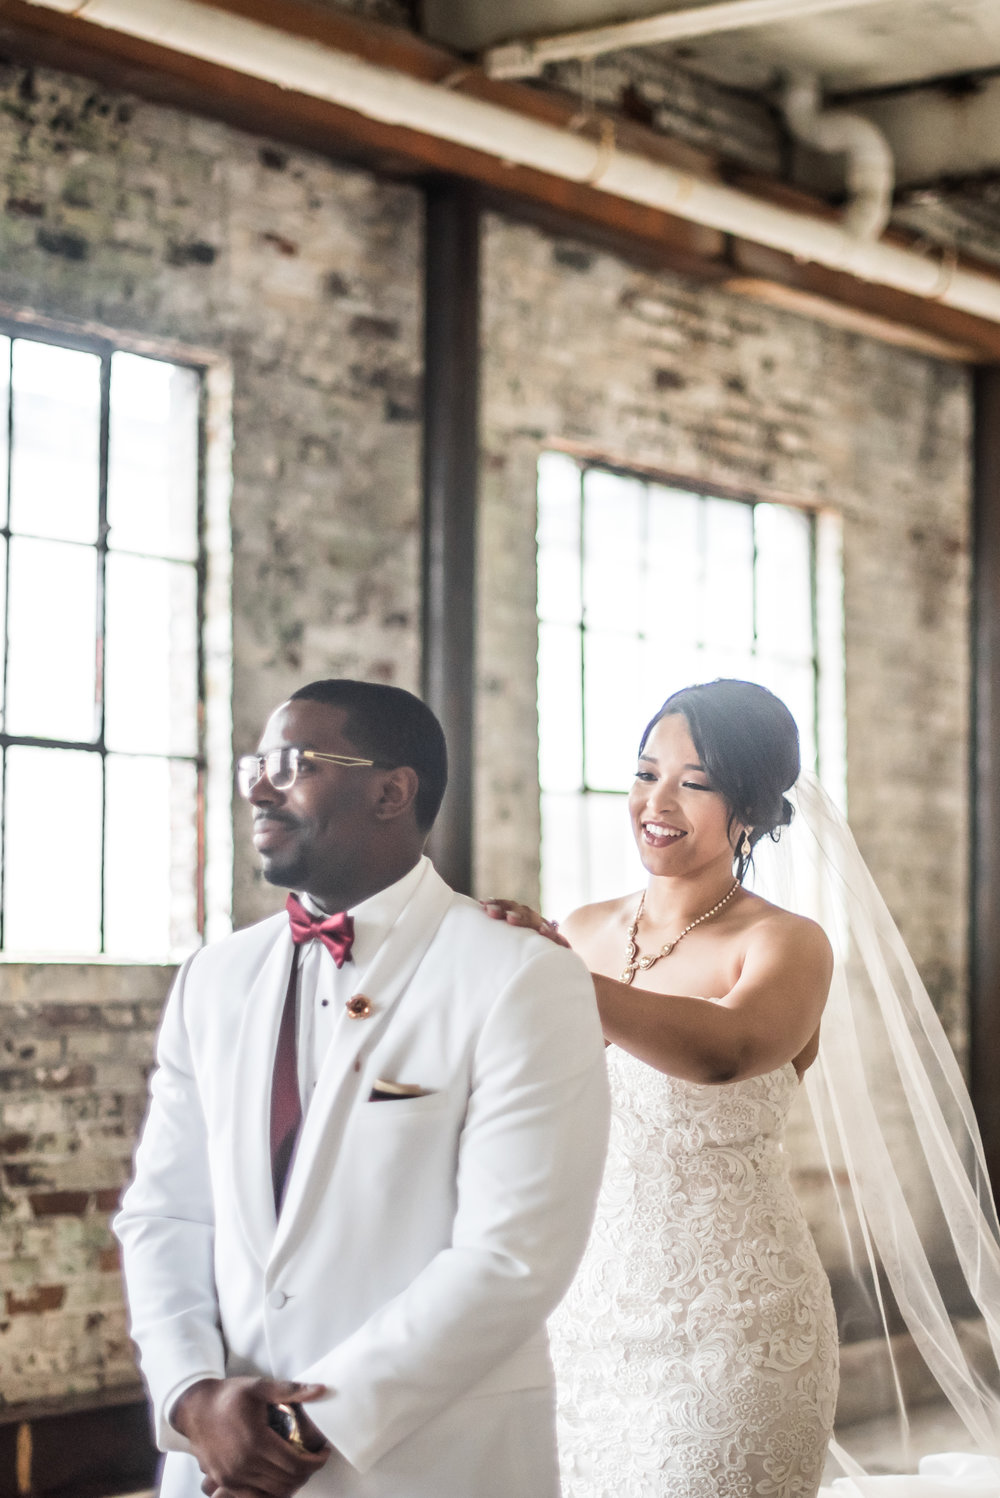 Burlington Iowa Wedding Midwest Photographer Melissa Cervantes _ Chantelle and Isaiah 104c.jpg